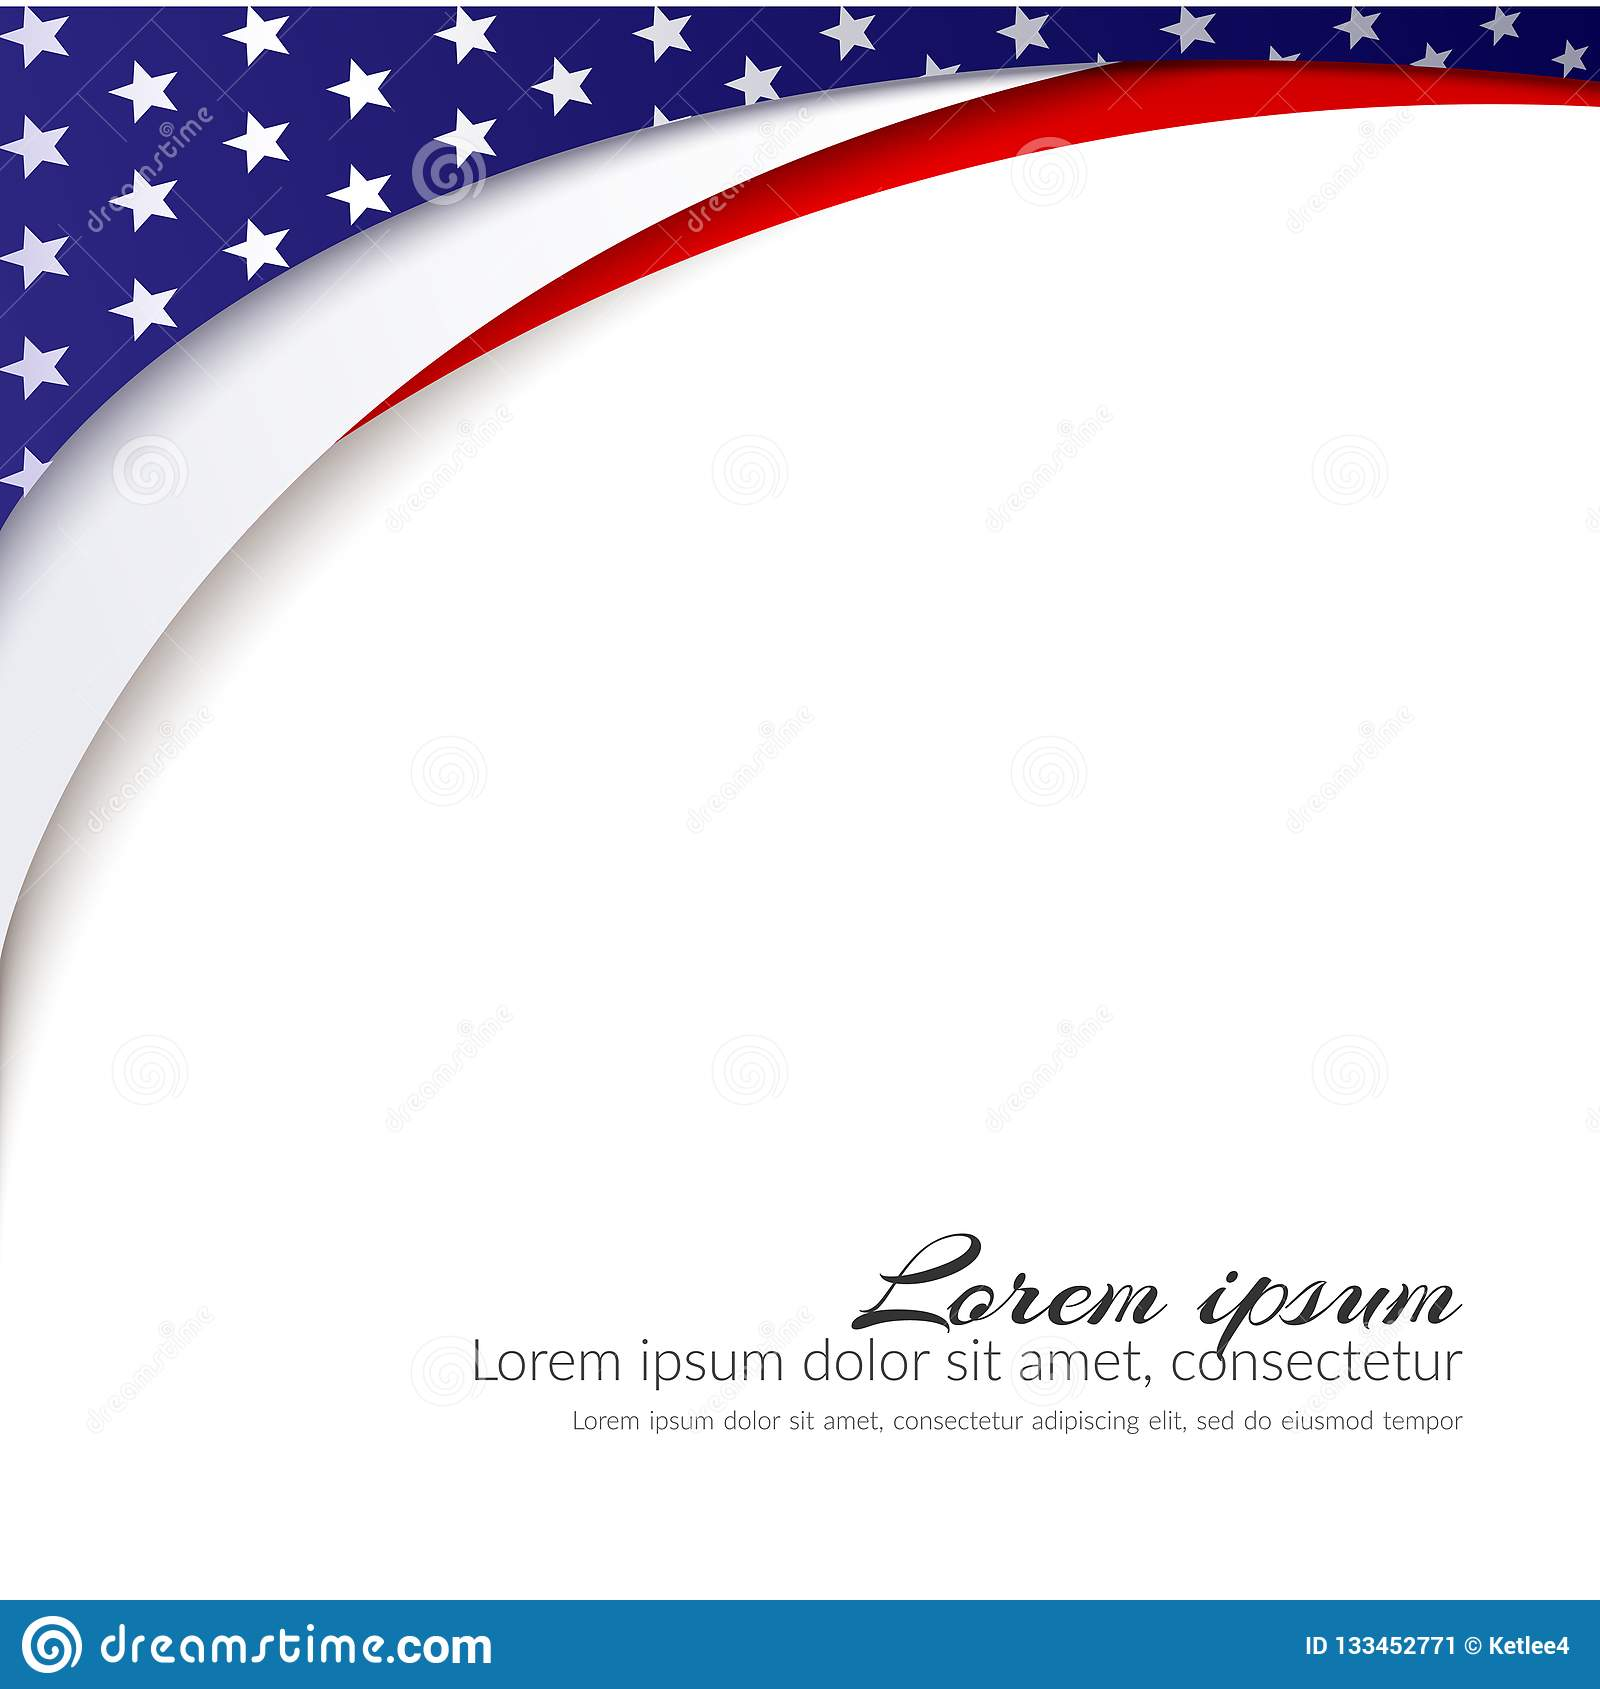 American Flag Vector background for Independence Day and other events Patriotic background with stars and smooth wavy lines